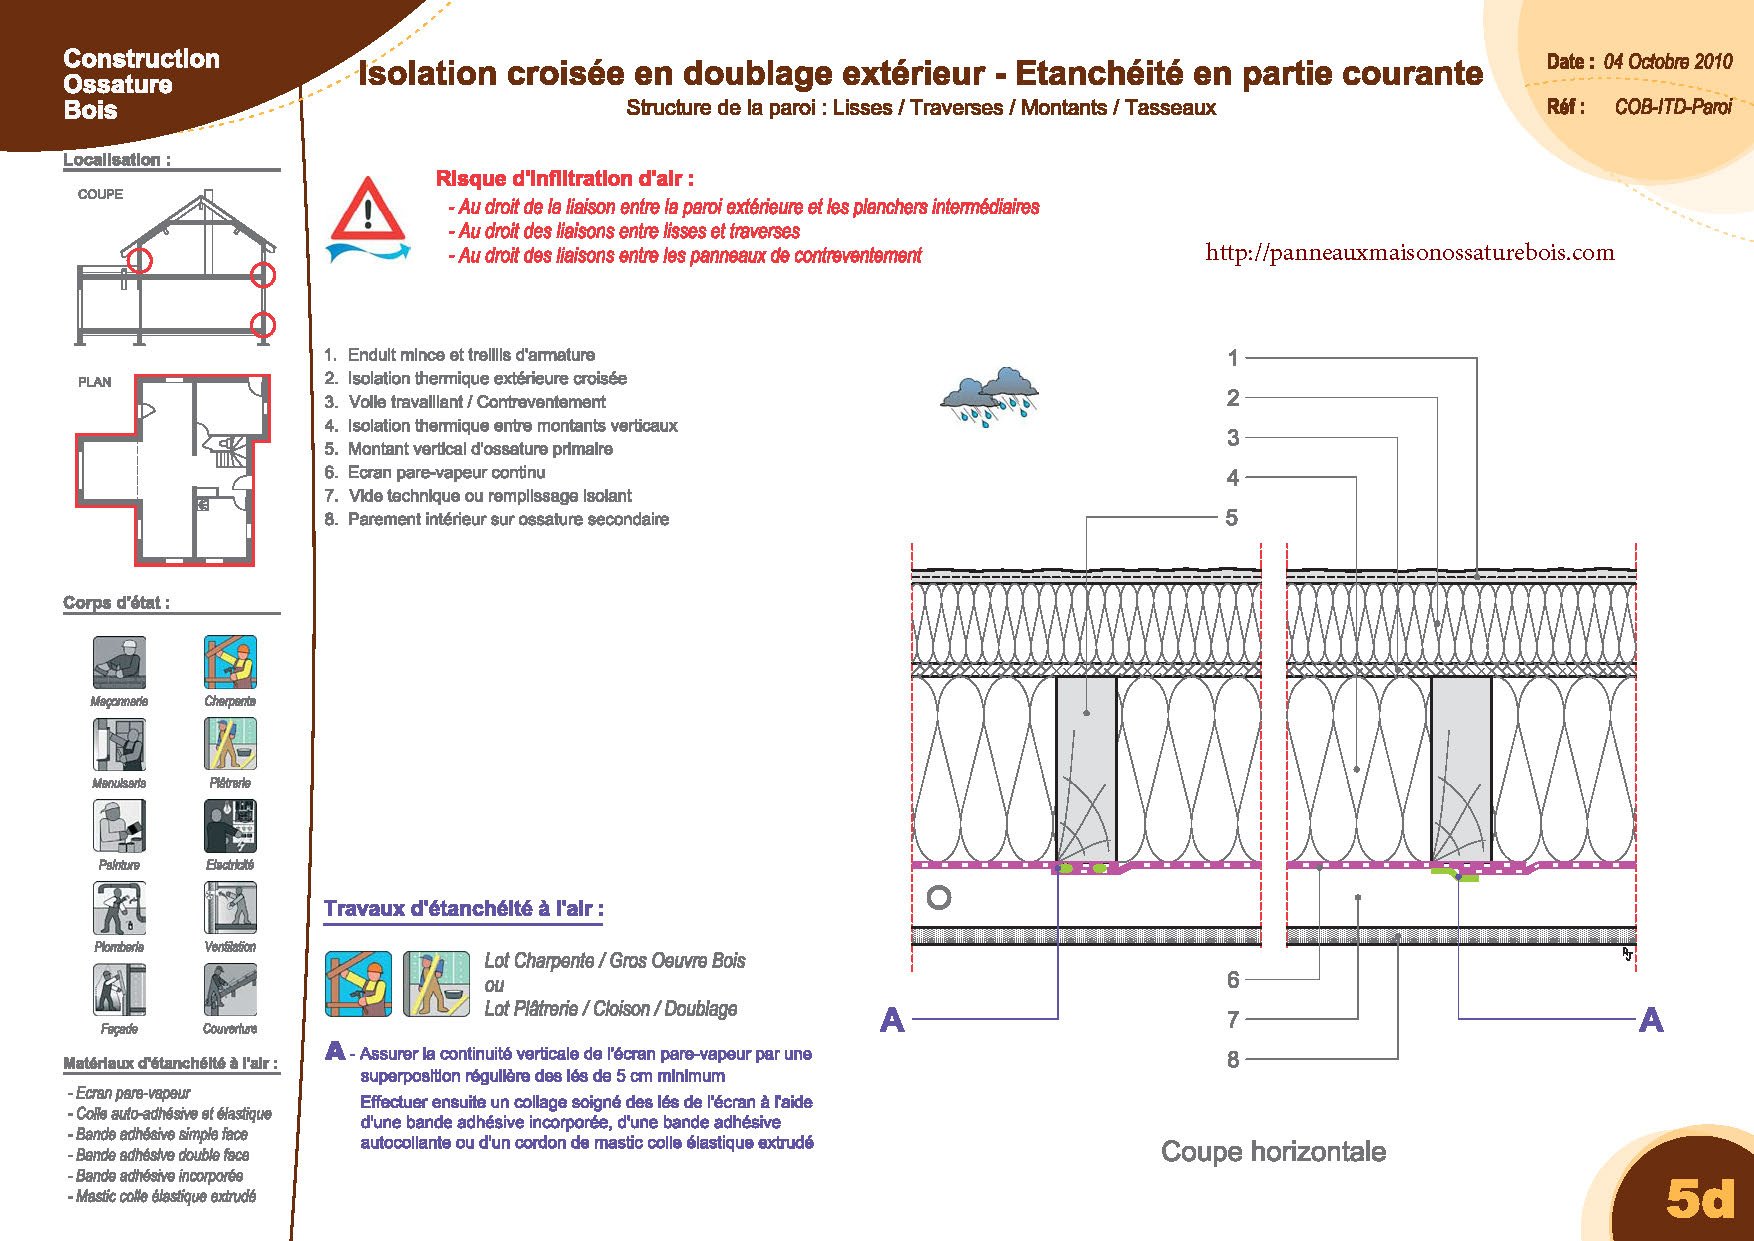 coupes construtions ossature bois complets_Page_21